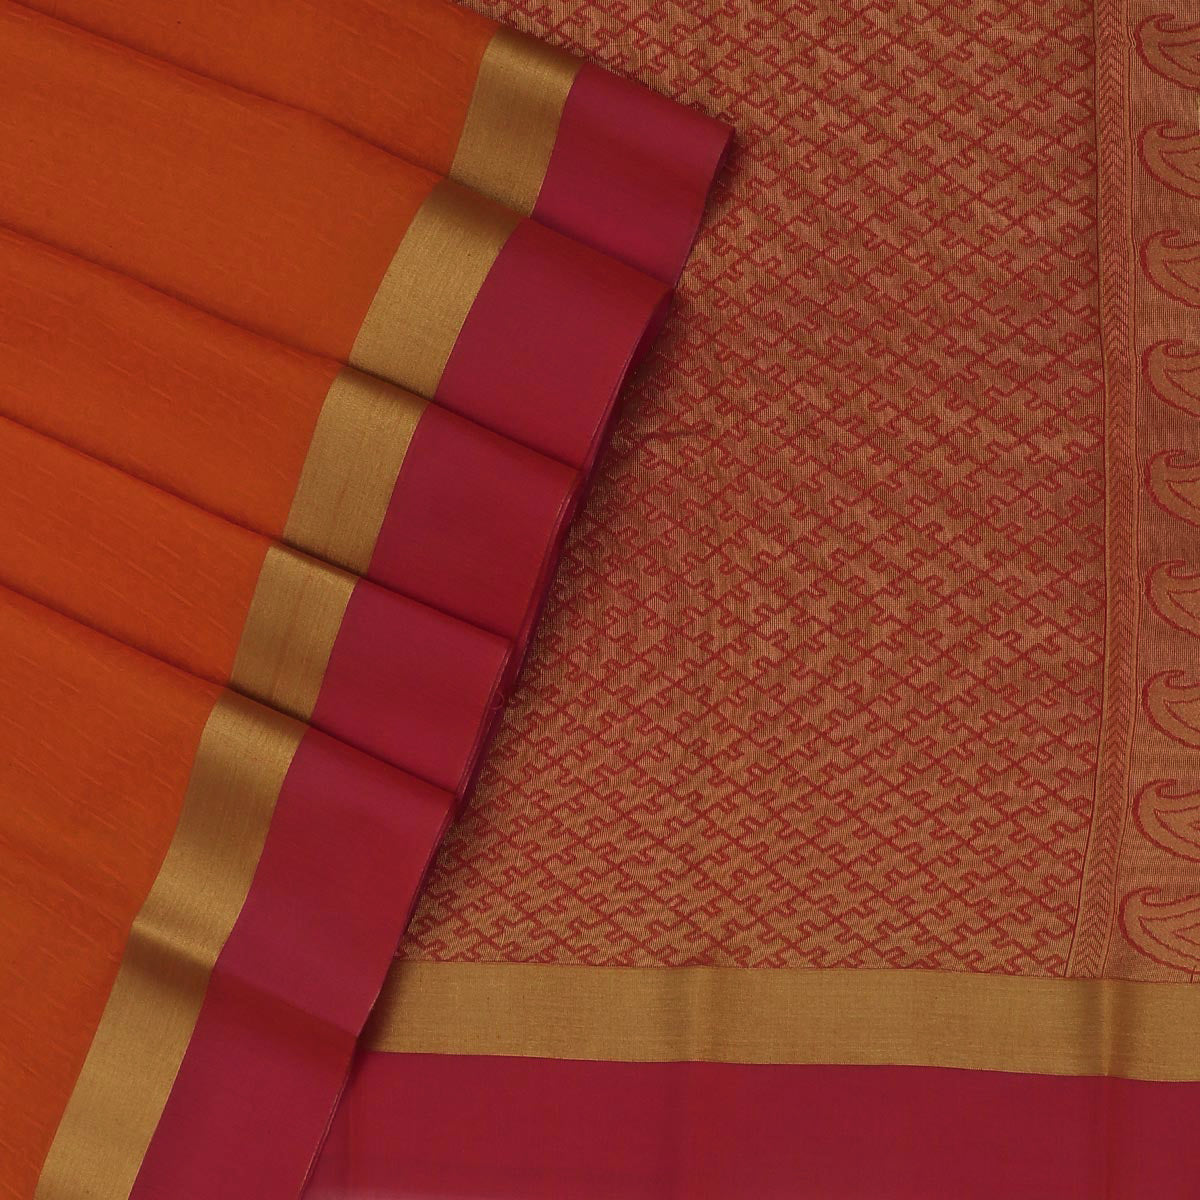 Kora silk saree Orange and pink Shade with zari border